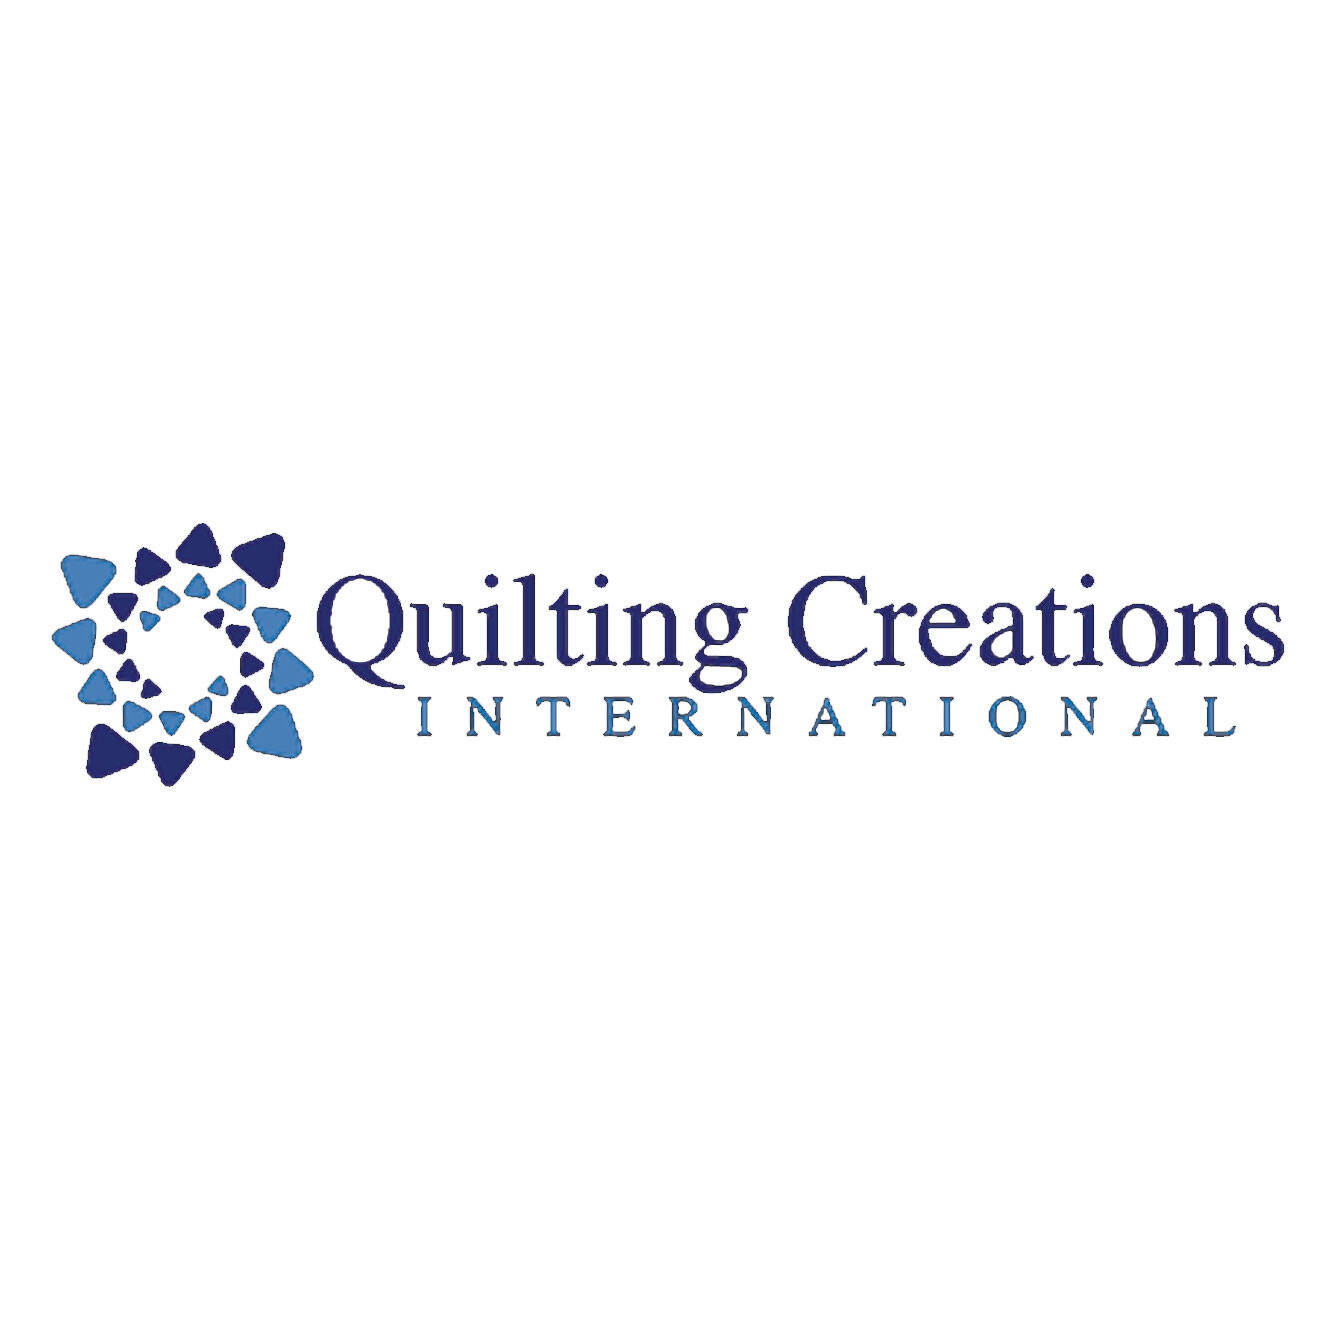 Quilting Creations